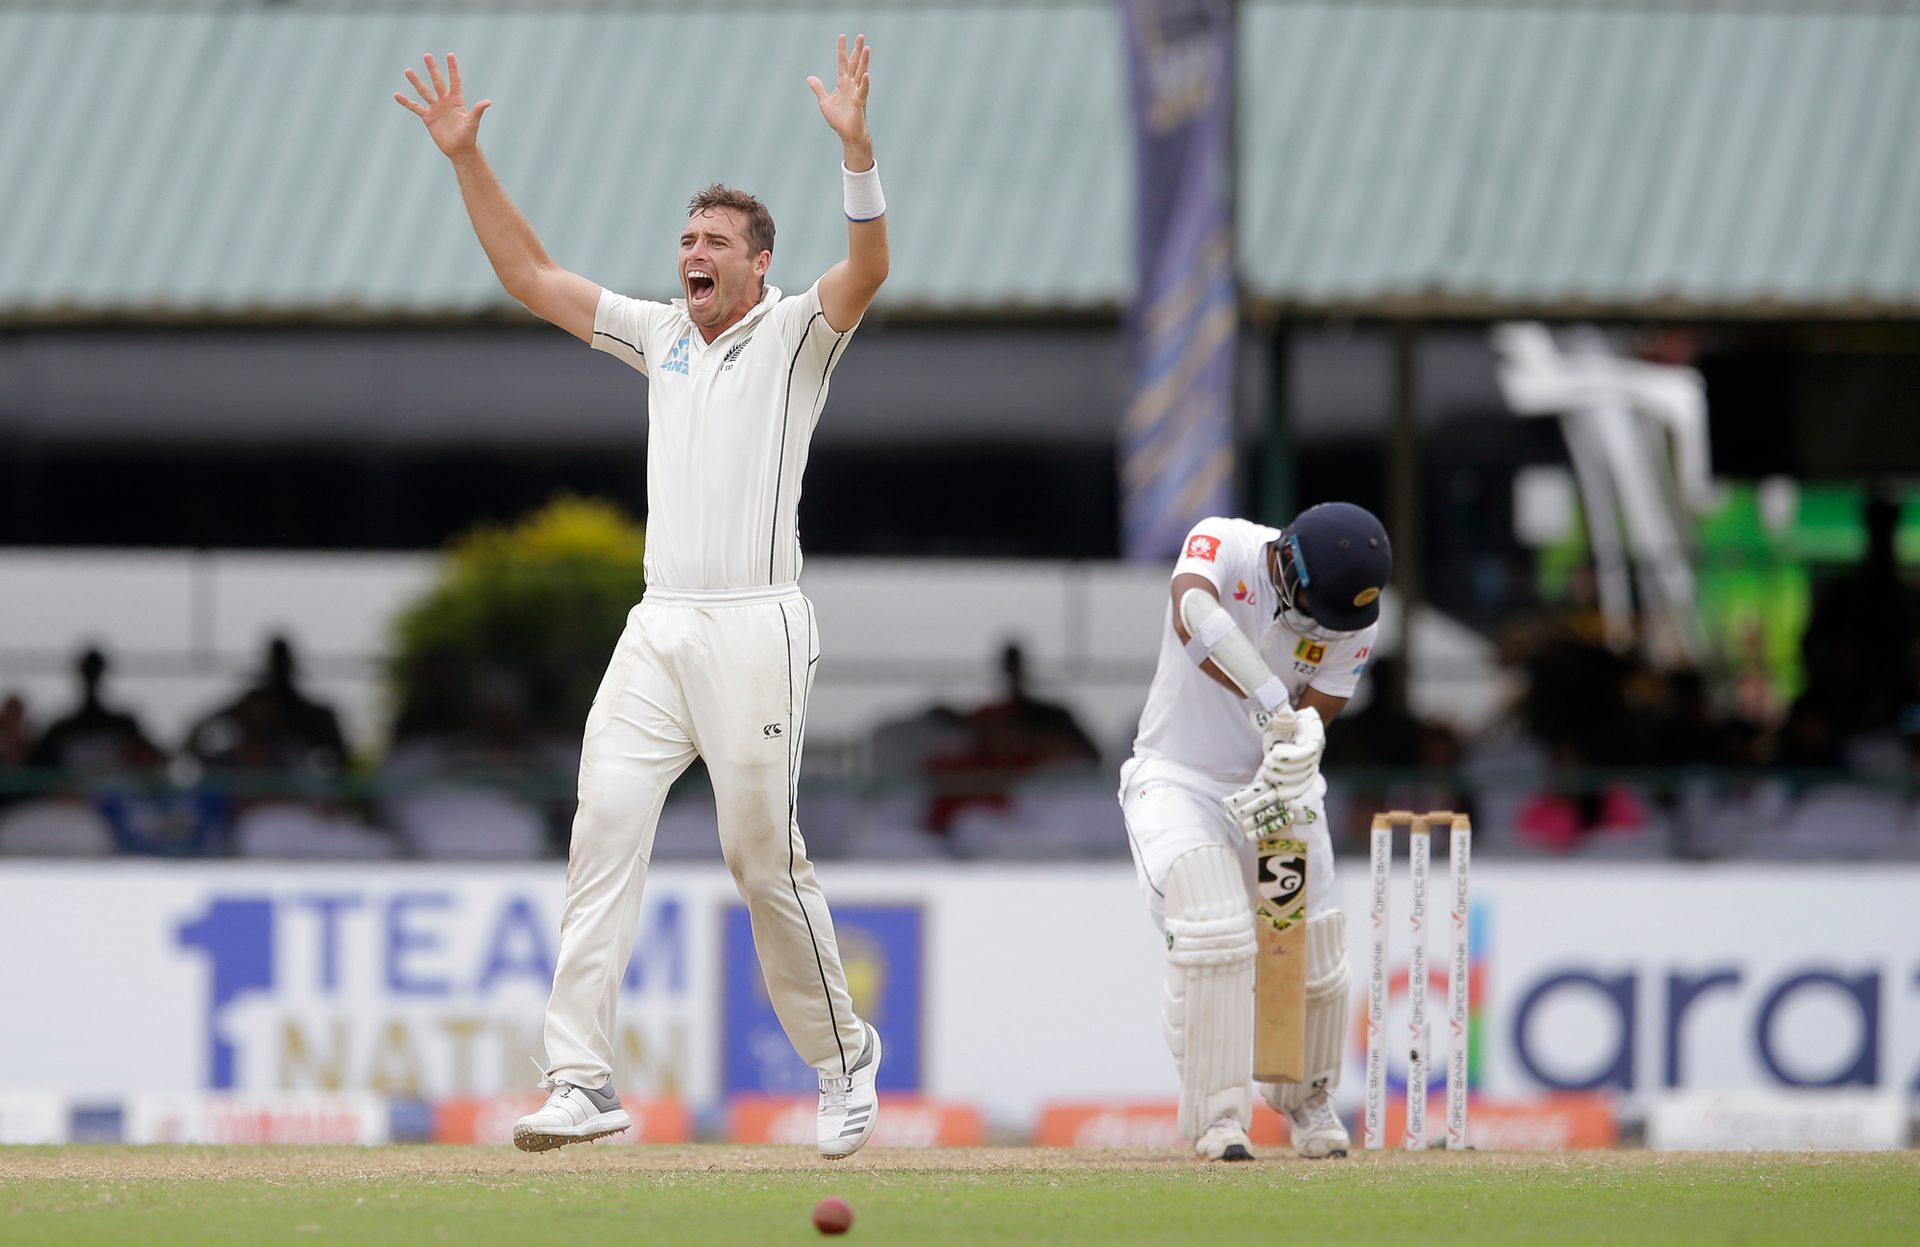 Right at the end! Black Caps claim thrilling test victory